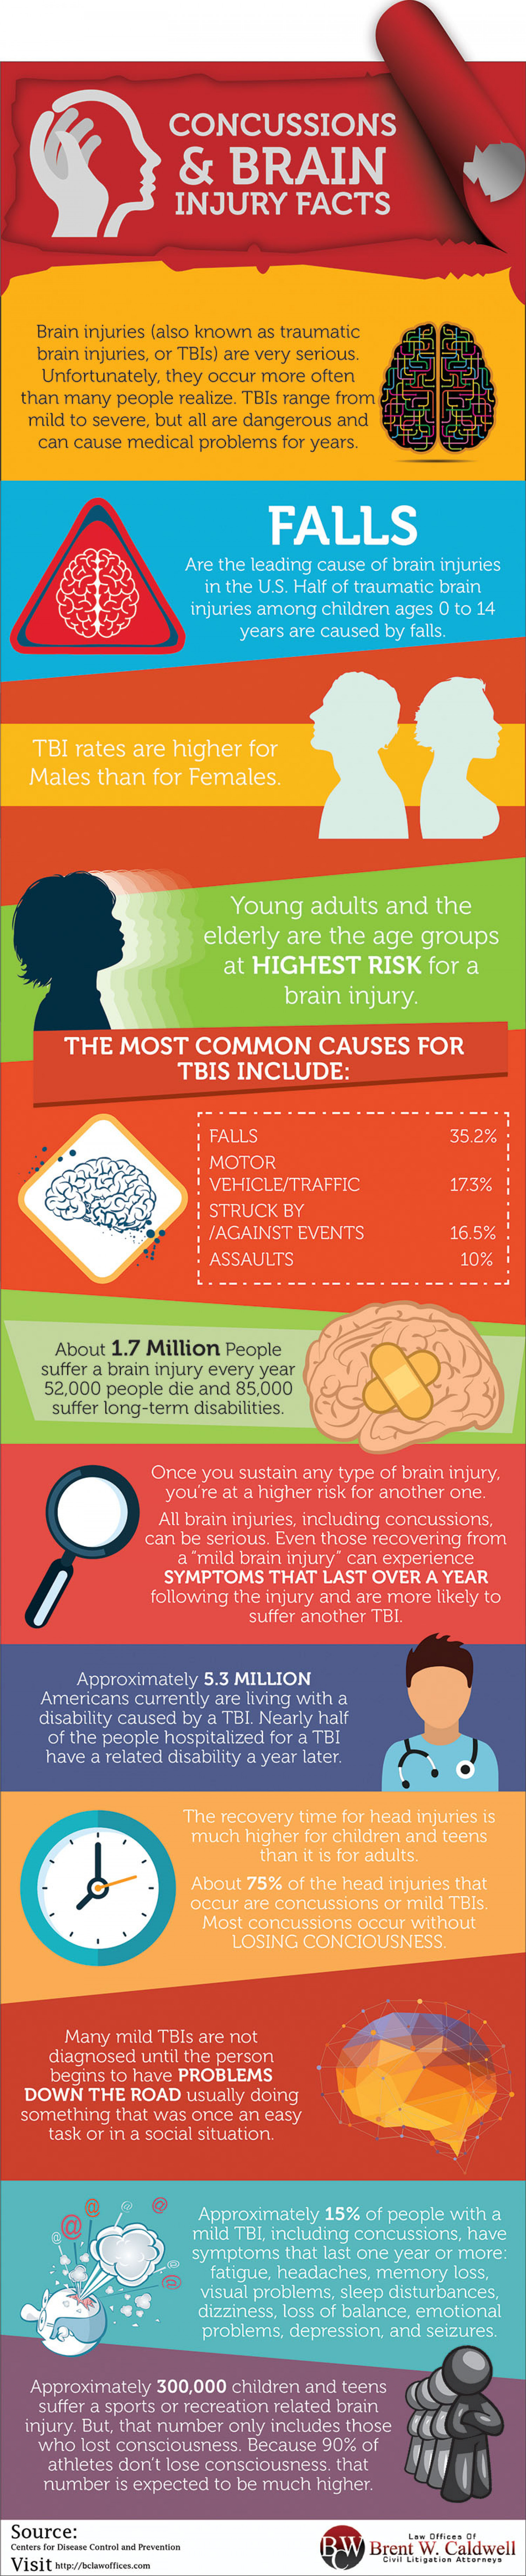 Concussions & Brain Injury Facts Infographic